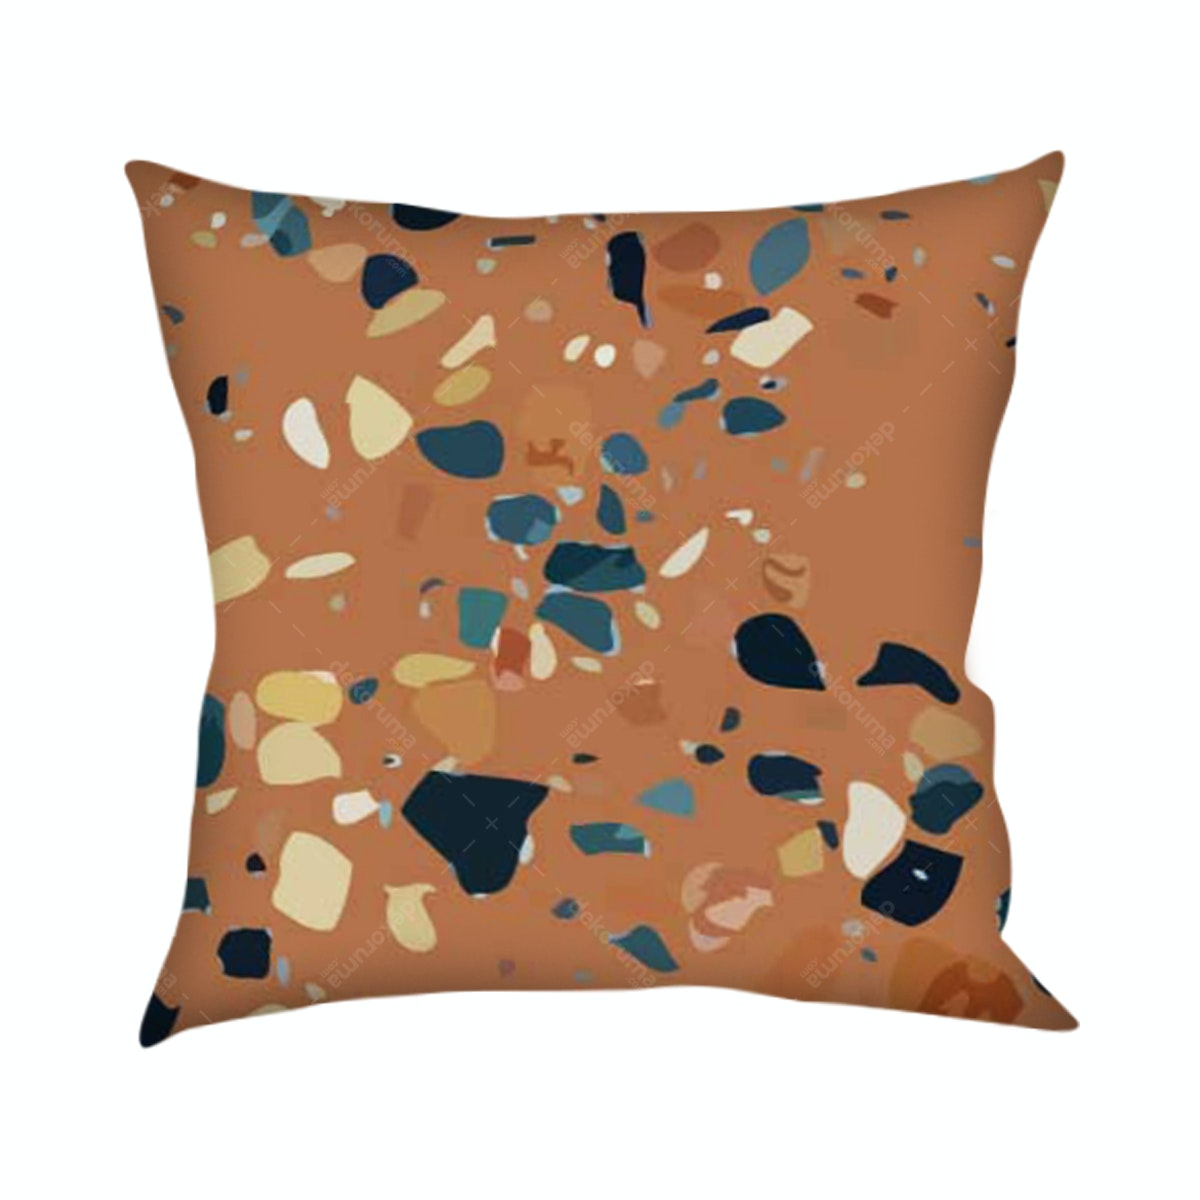 On&On Terrazzo 4 Cushion 40x40cm (Insert+Cover)